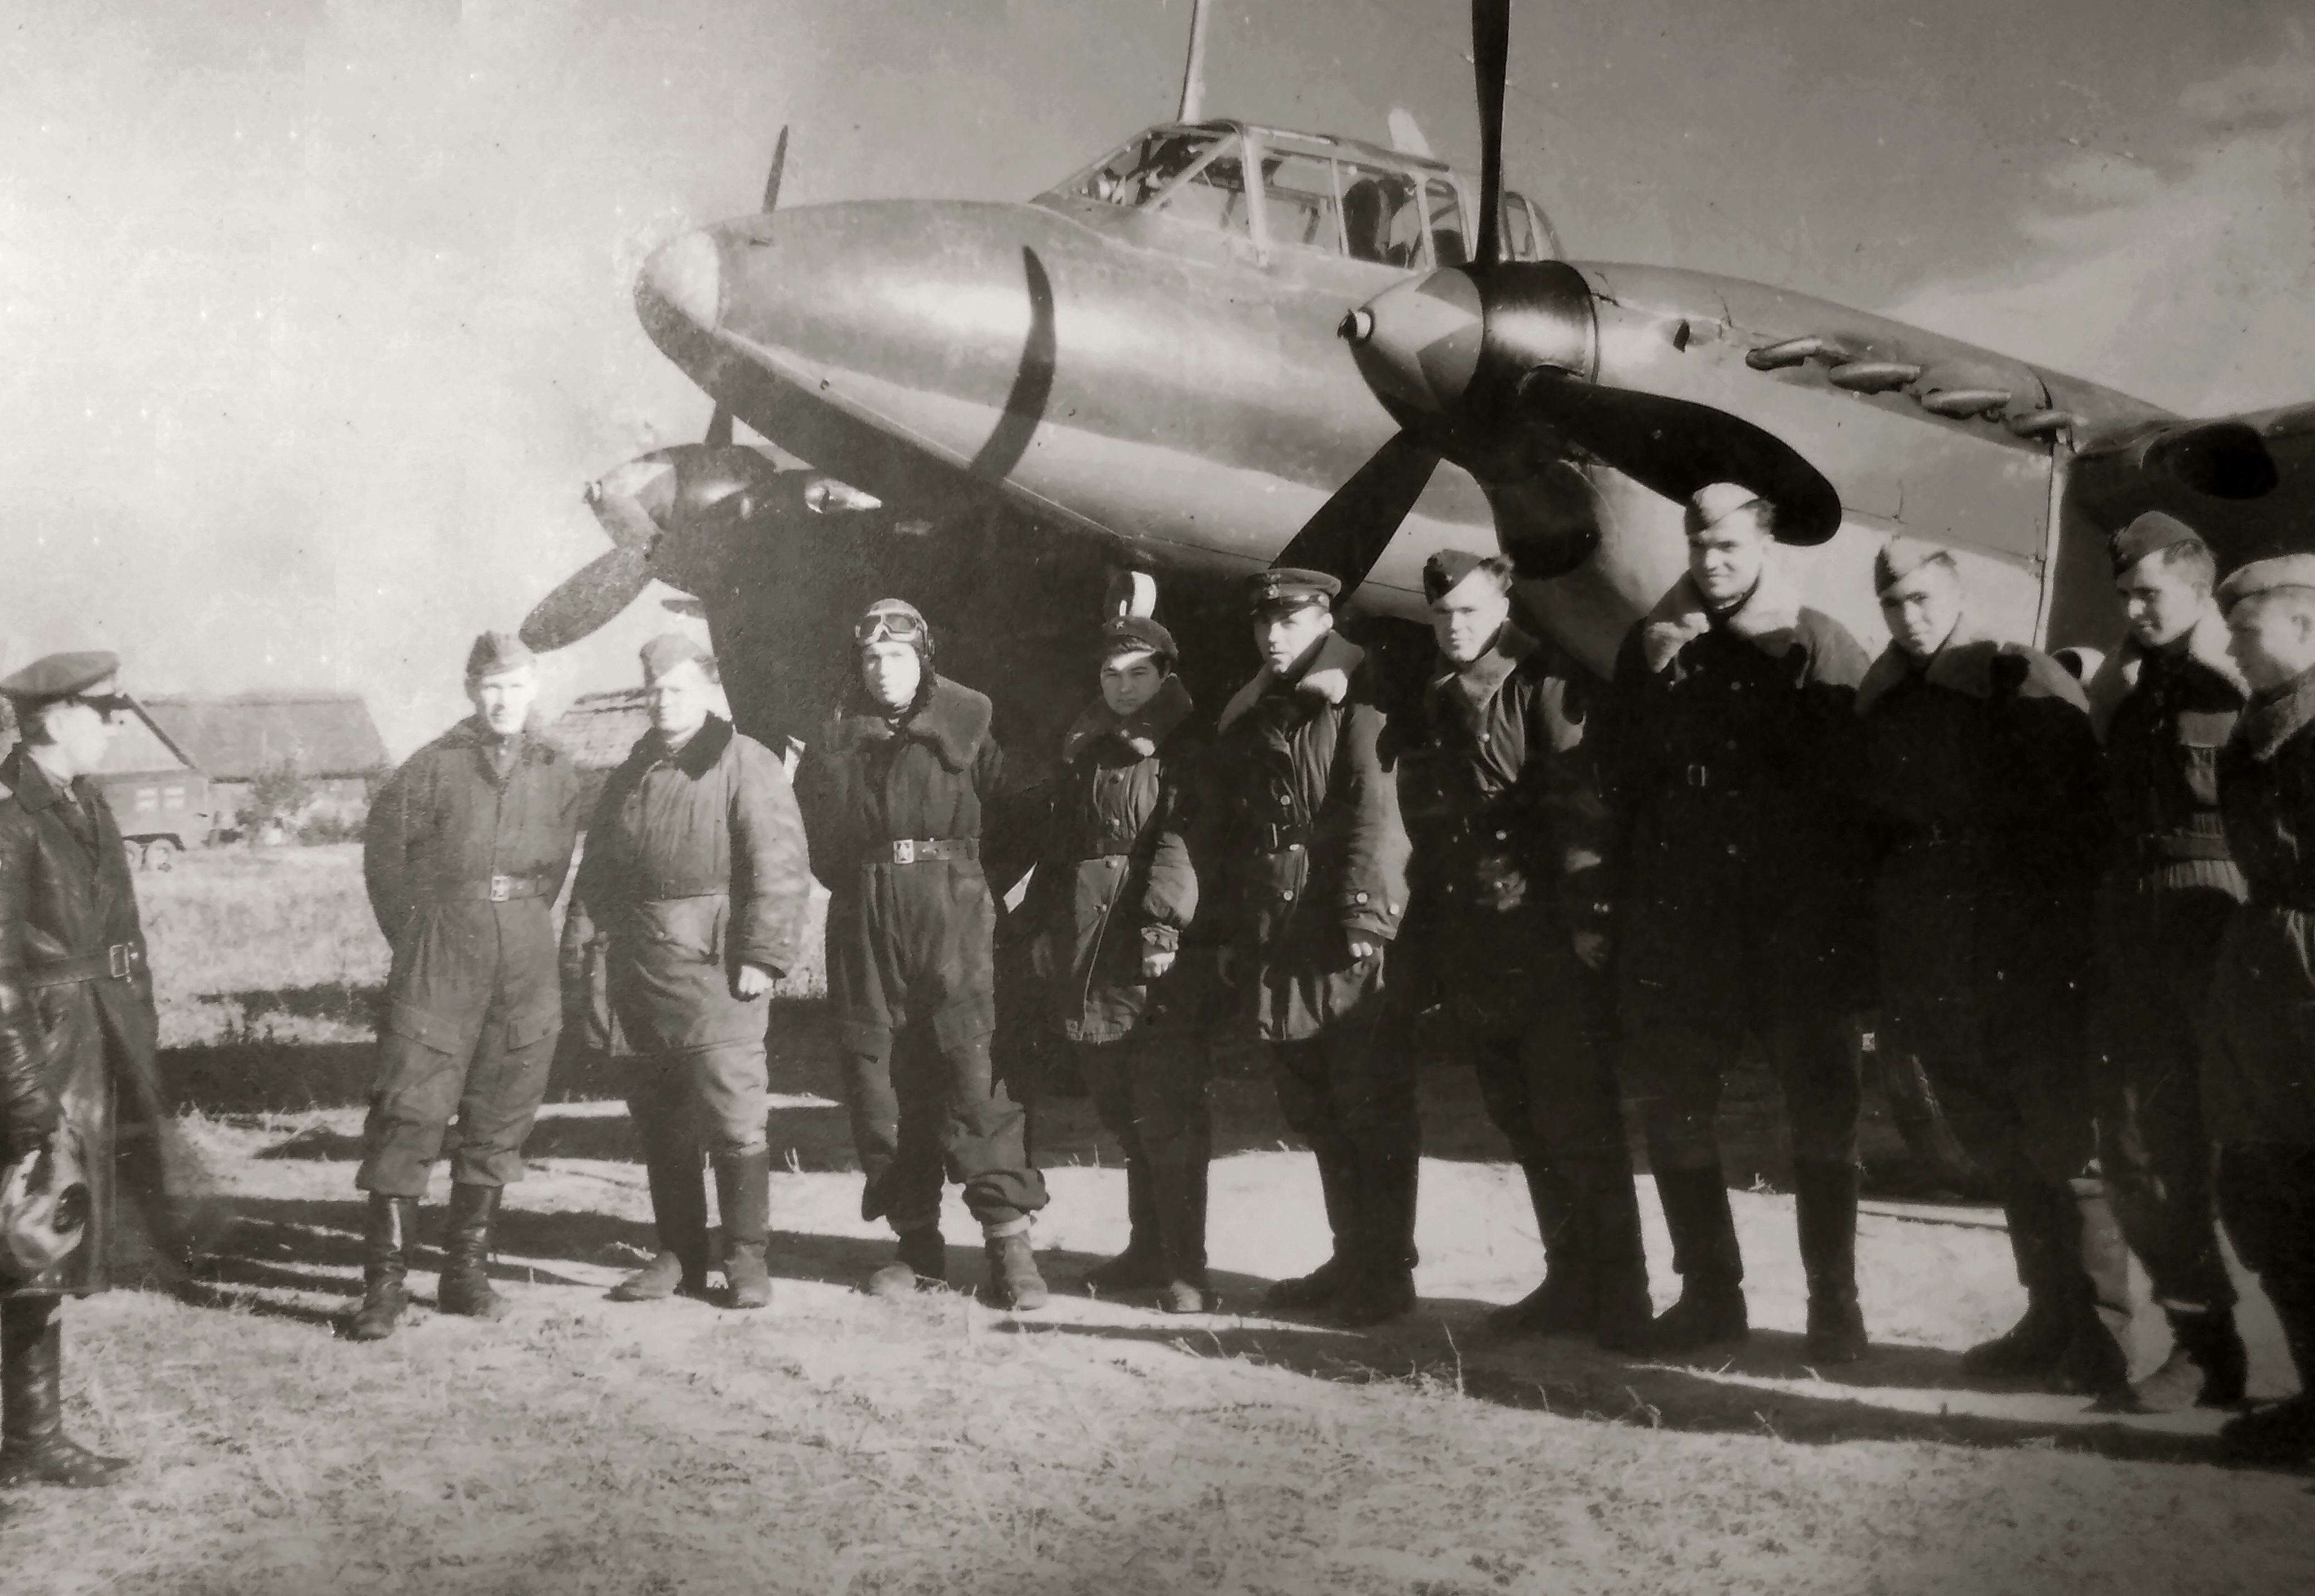 Aircrew Soviet 161GvBAP with Ivan Akipsimovich Maleev and colleagues 01